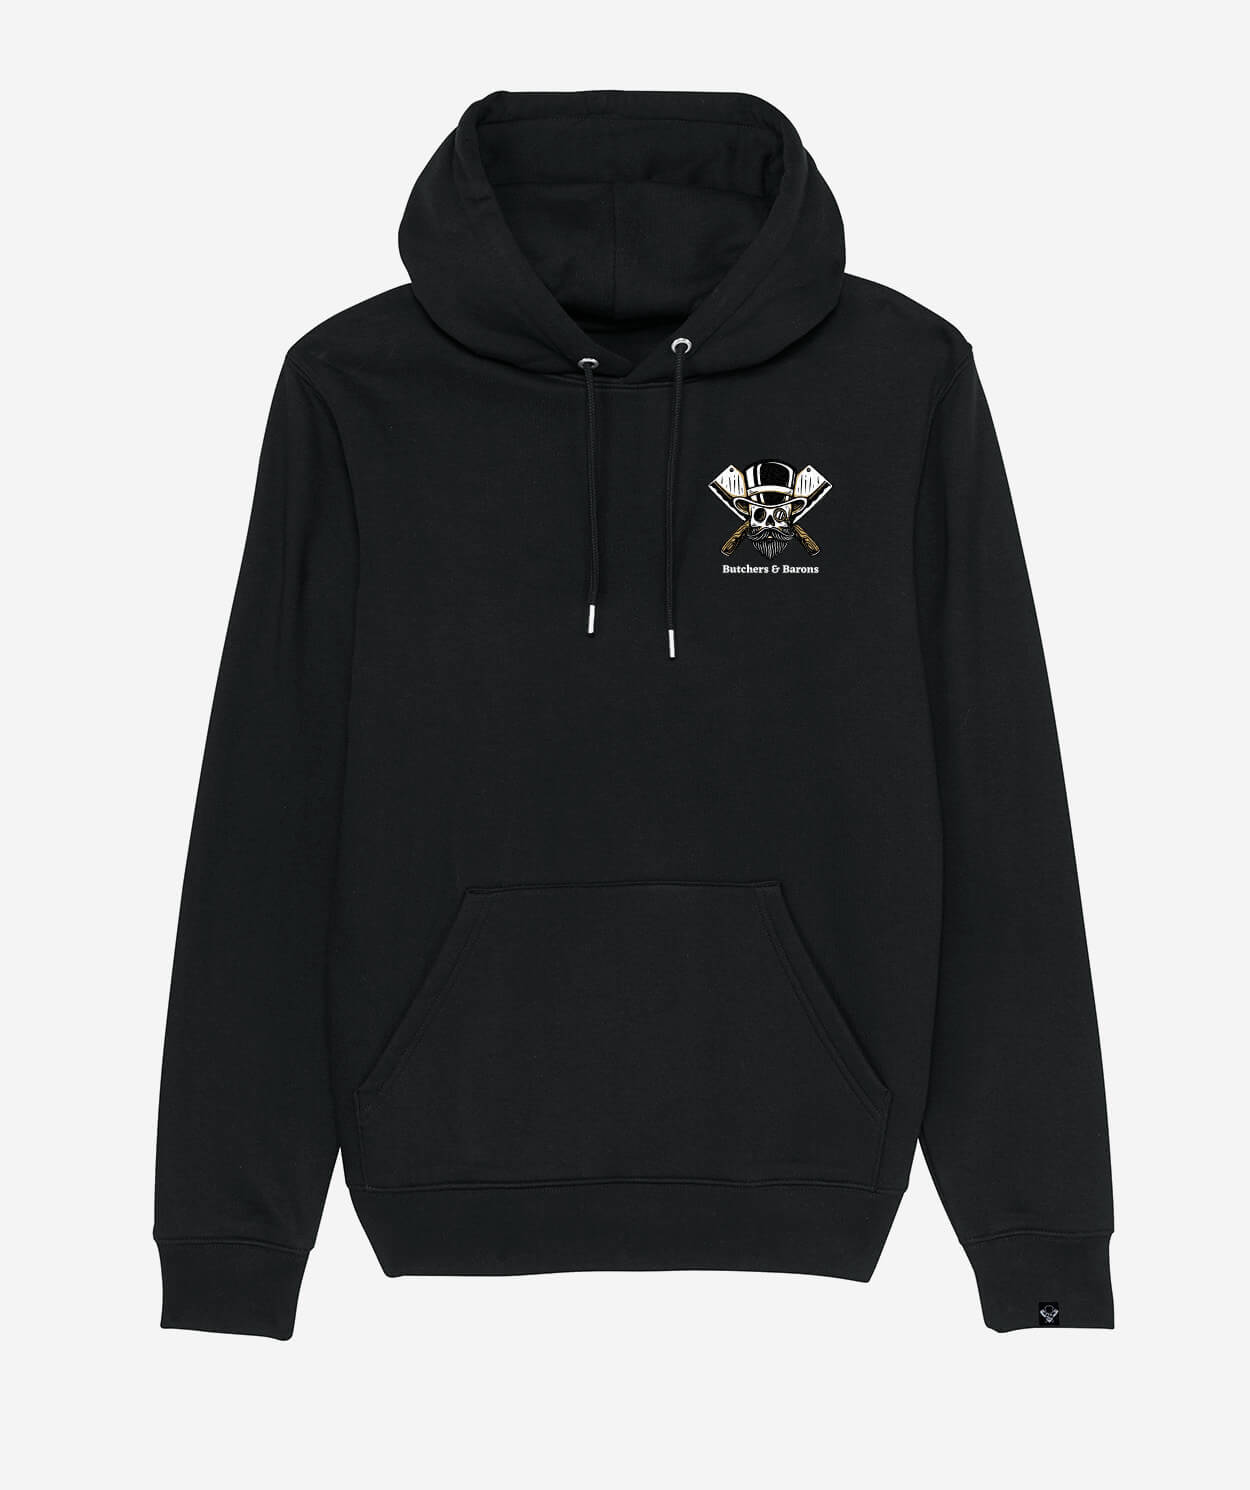 Loyalty black hoodie by Butchers & Barons with skull, beard and monocle.